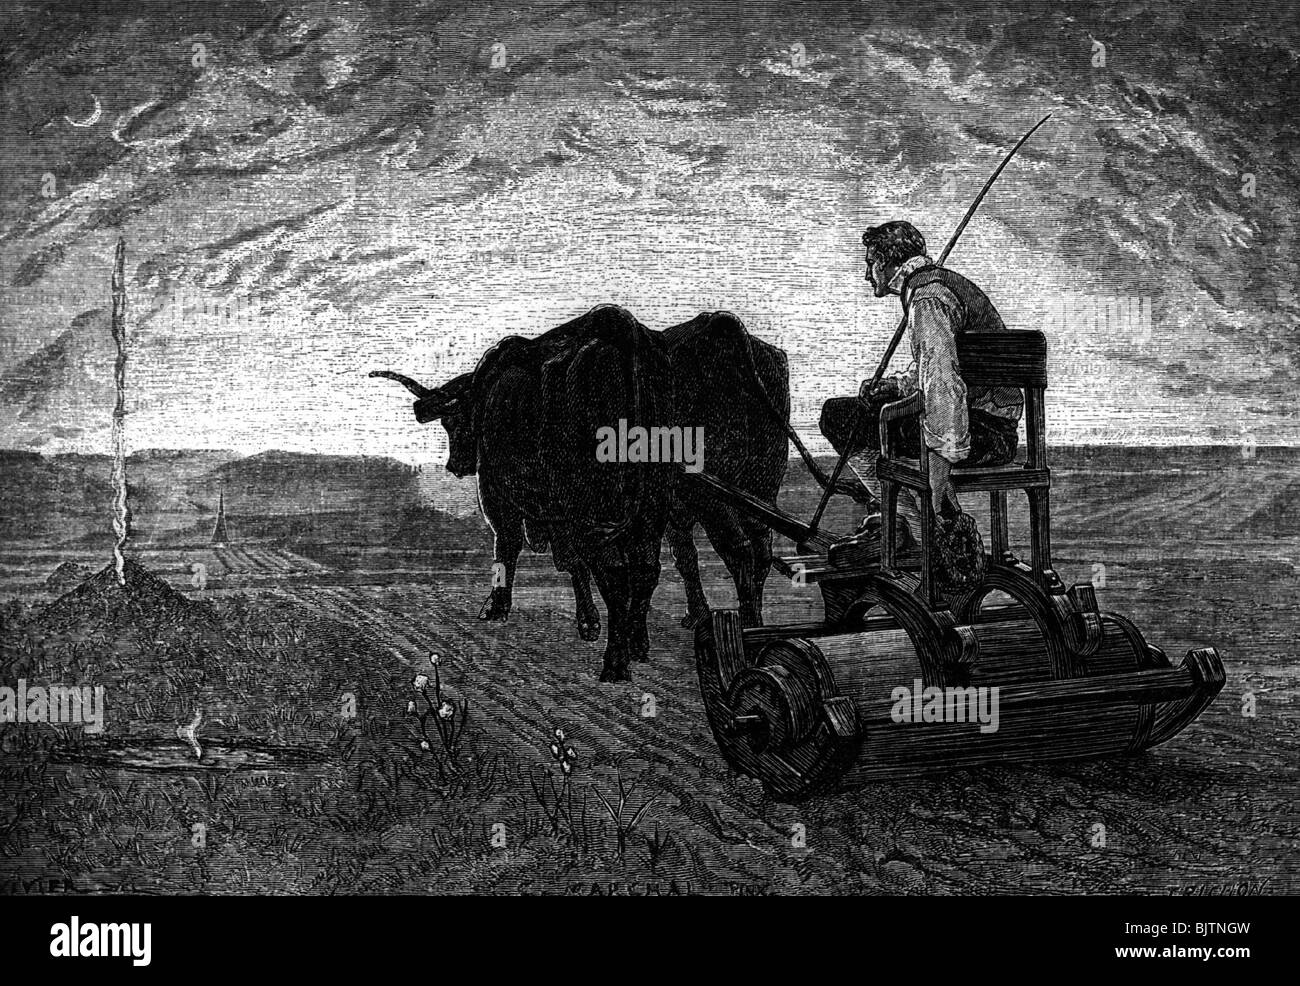 agriculture, ploughing, 'In the evening', wood engraving by Trichon after drawing by C. Marchal, 1872, Additional - Stock Image